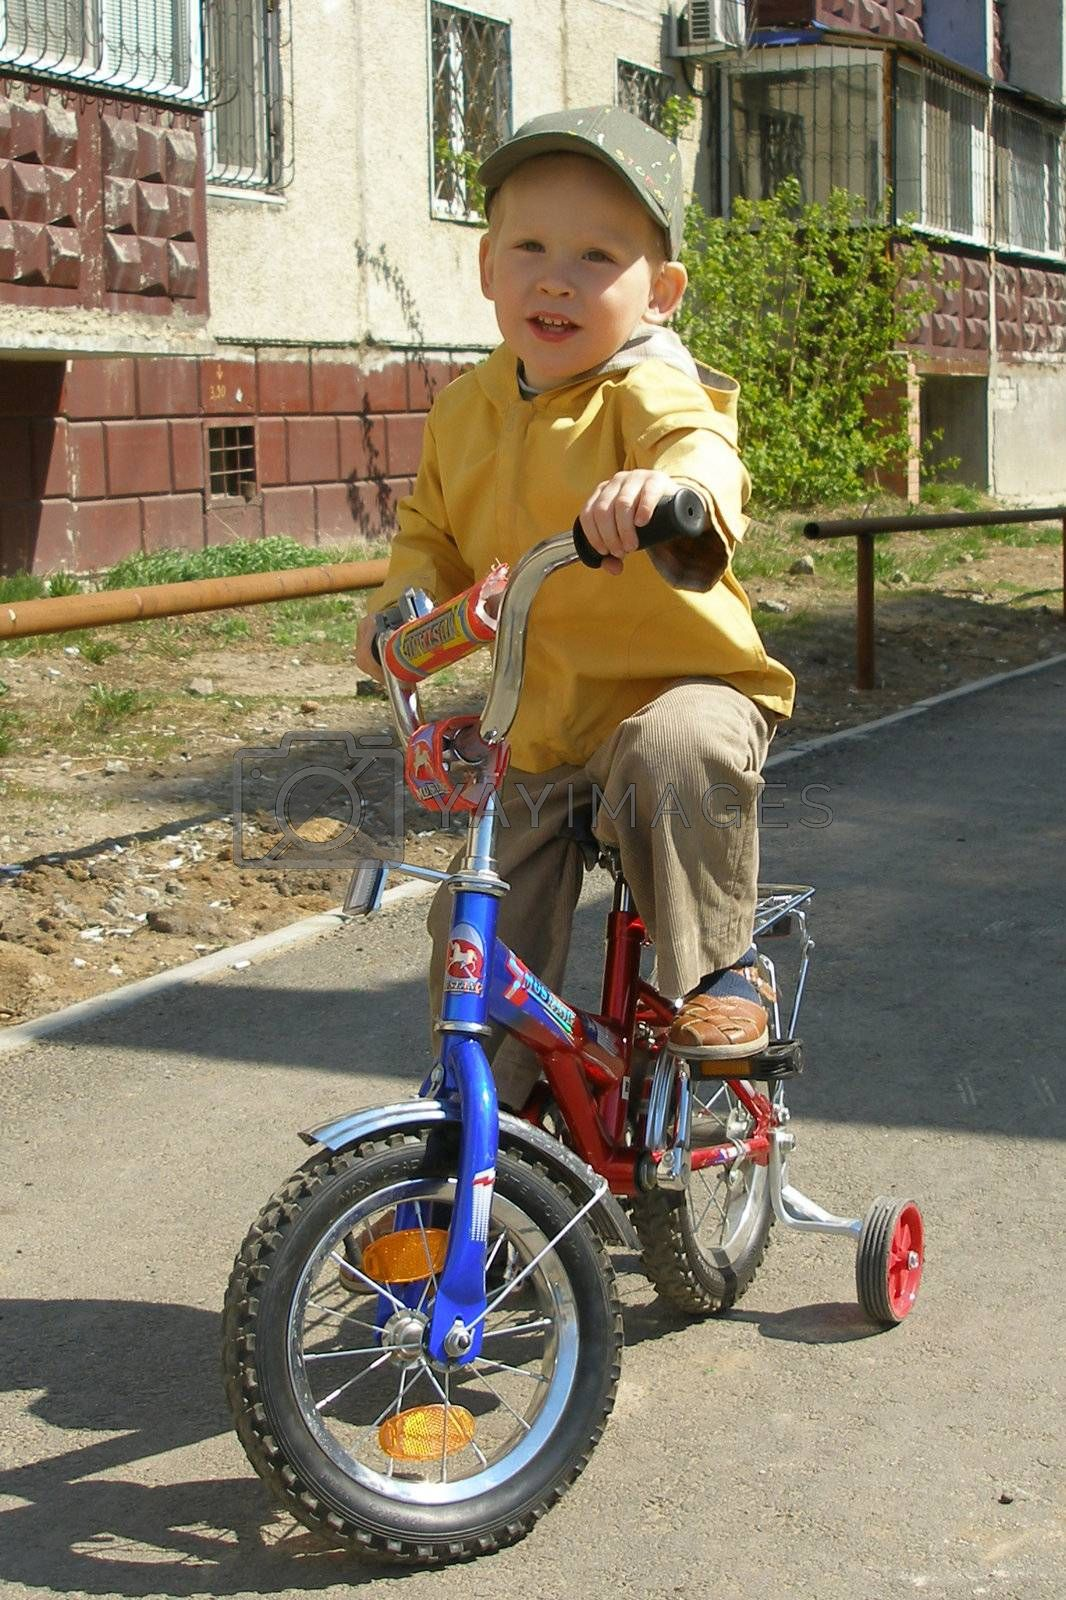 The boy goes for a drive on a bicycle